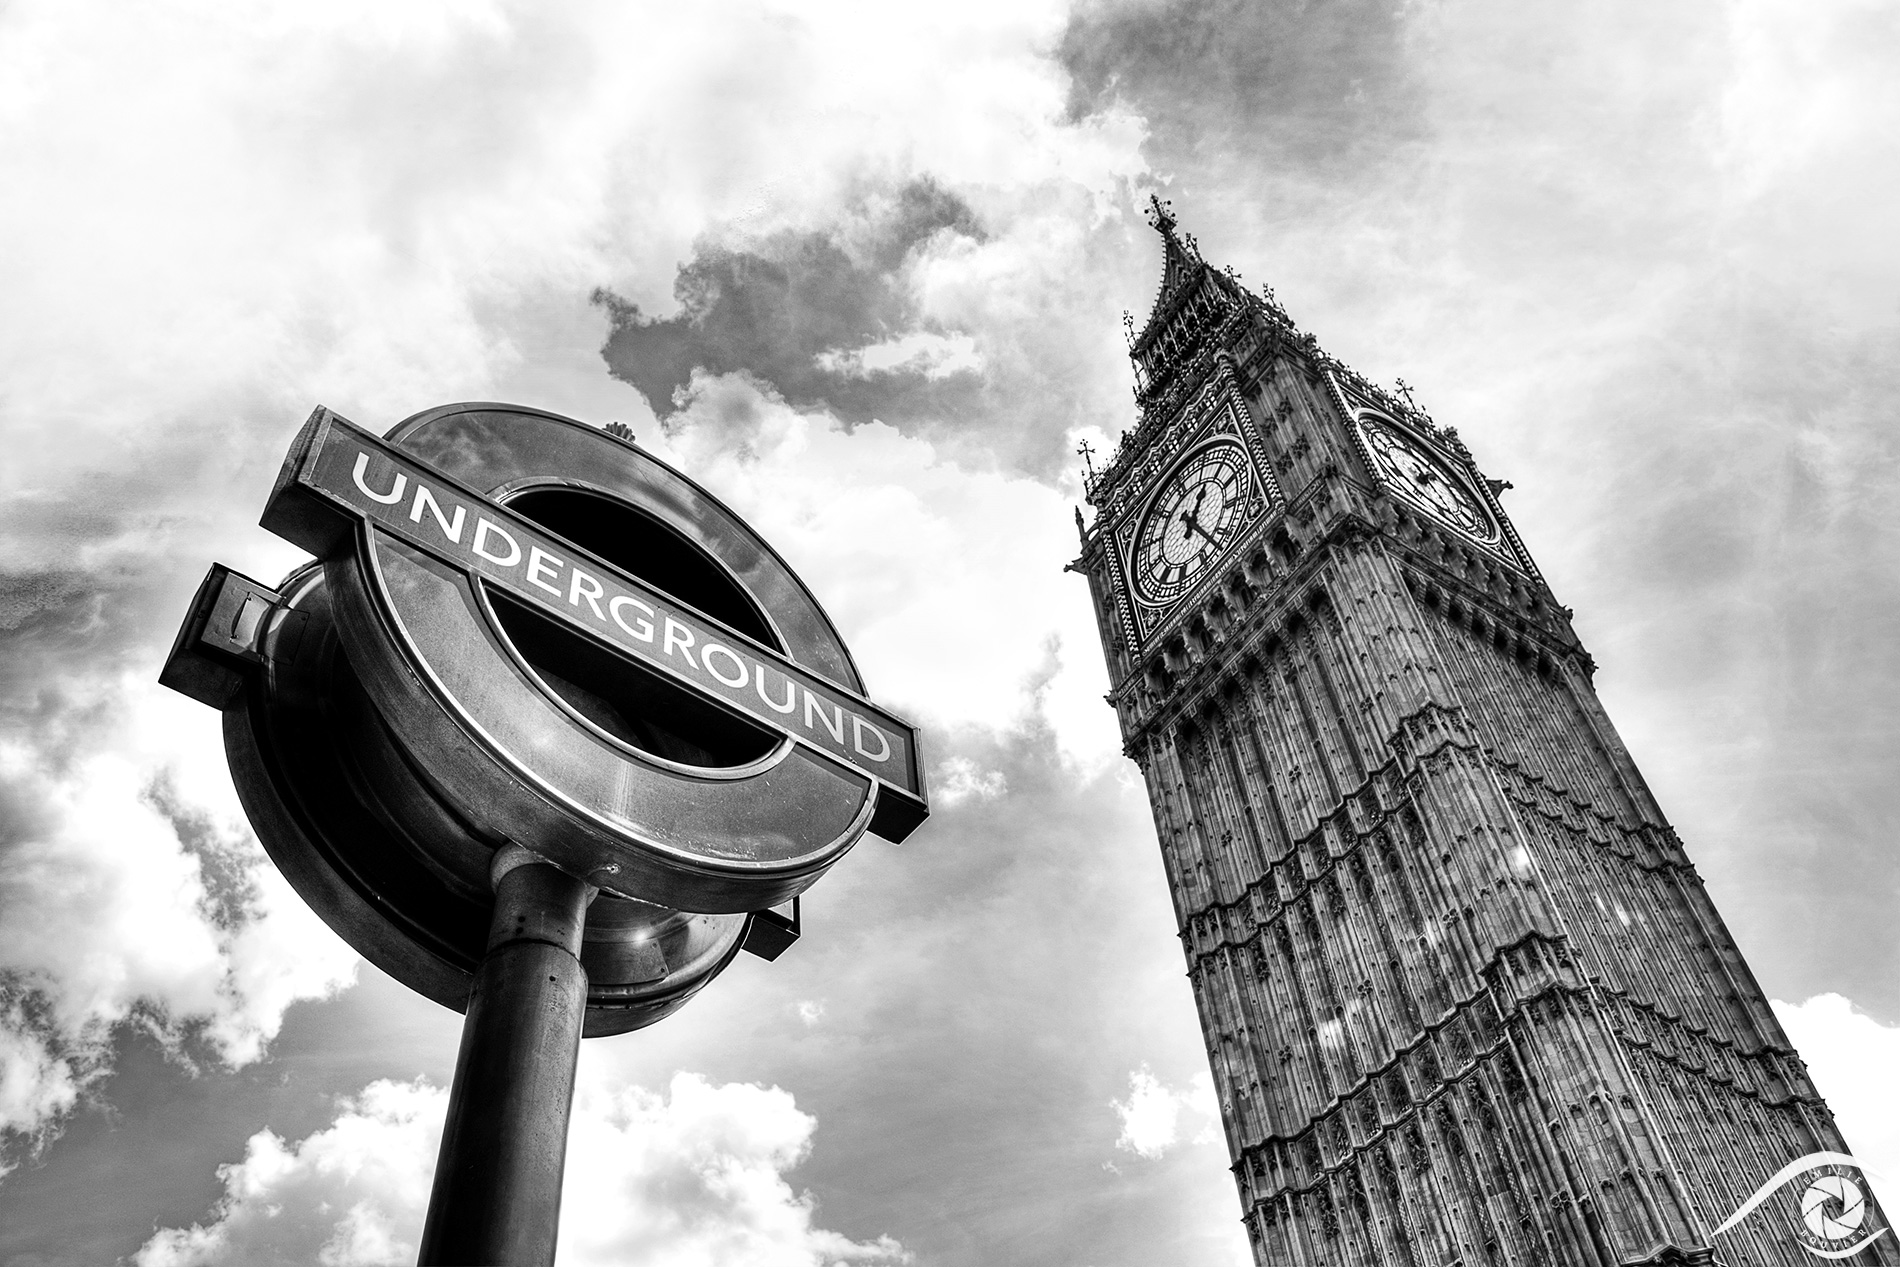 londres london big ben clock horloge westminster tour Royaume-Uni England Tamise great bell tower nikon d800 black and white noir et blanc photographie photography travel europe métro underground